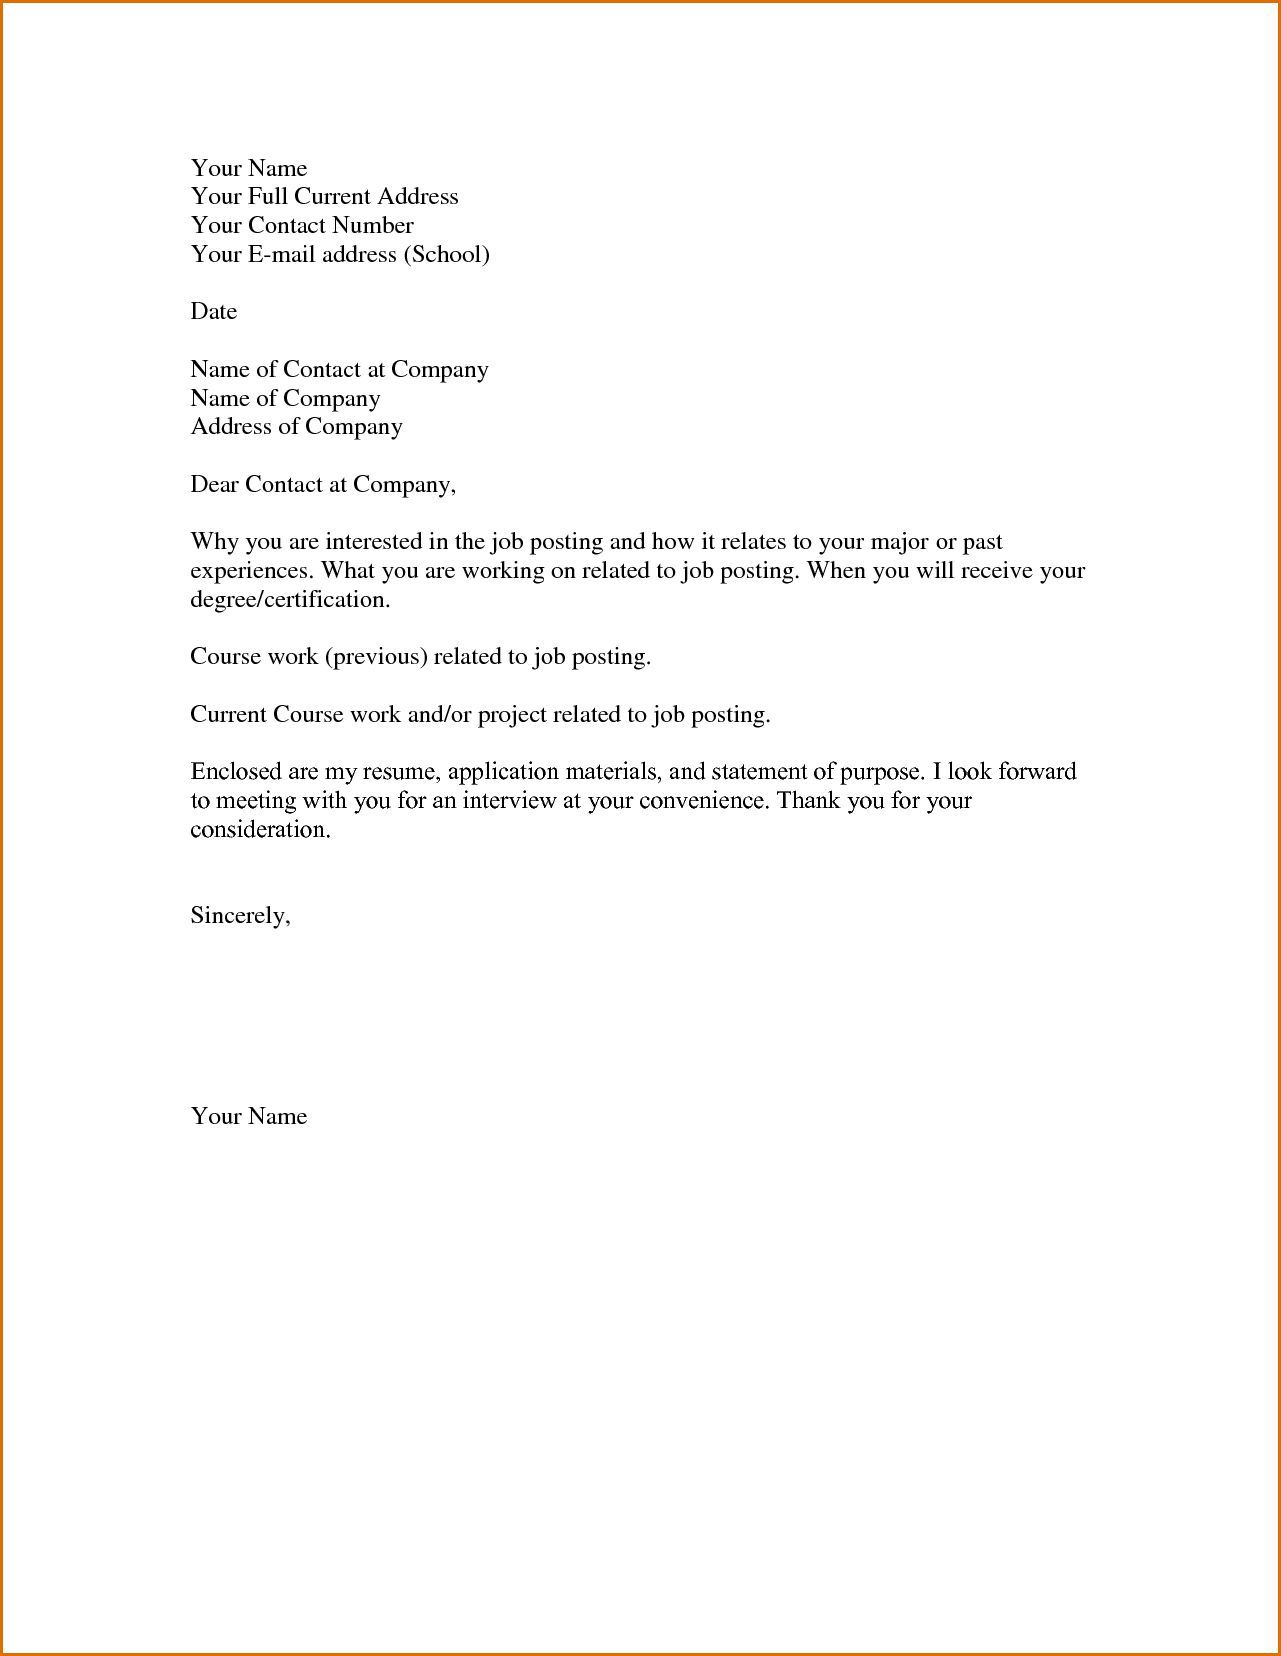 Job Letter Template from www.addictionary.org